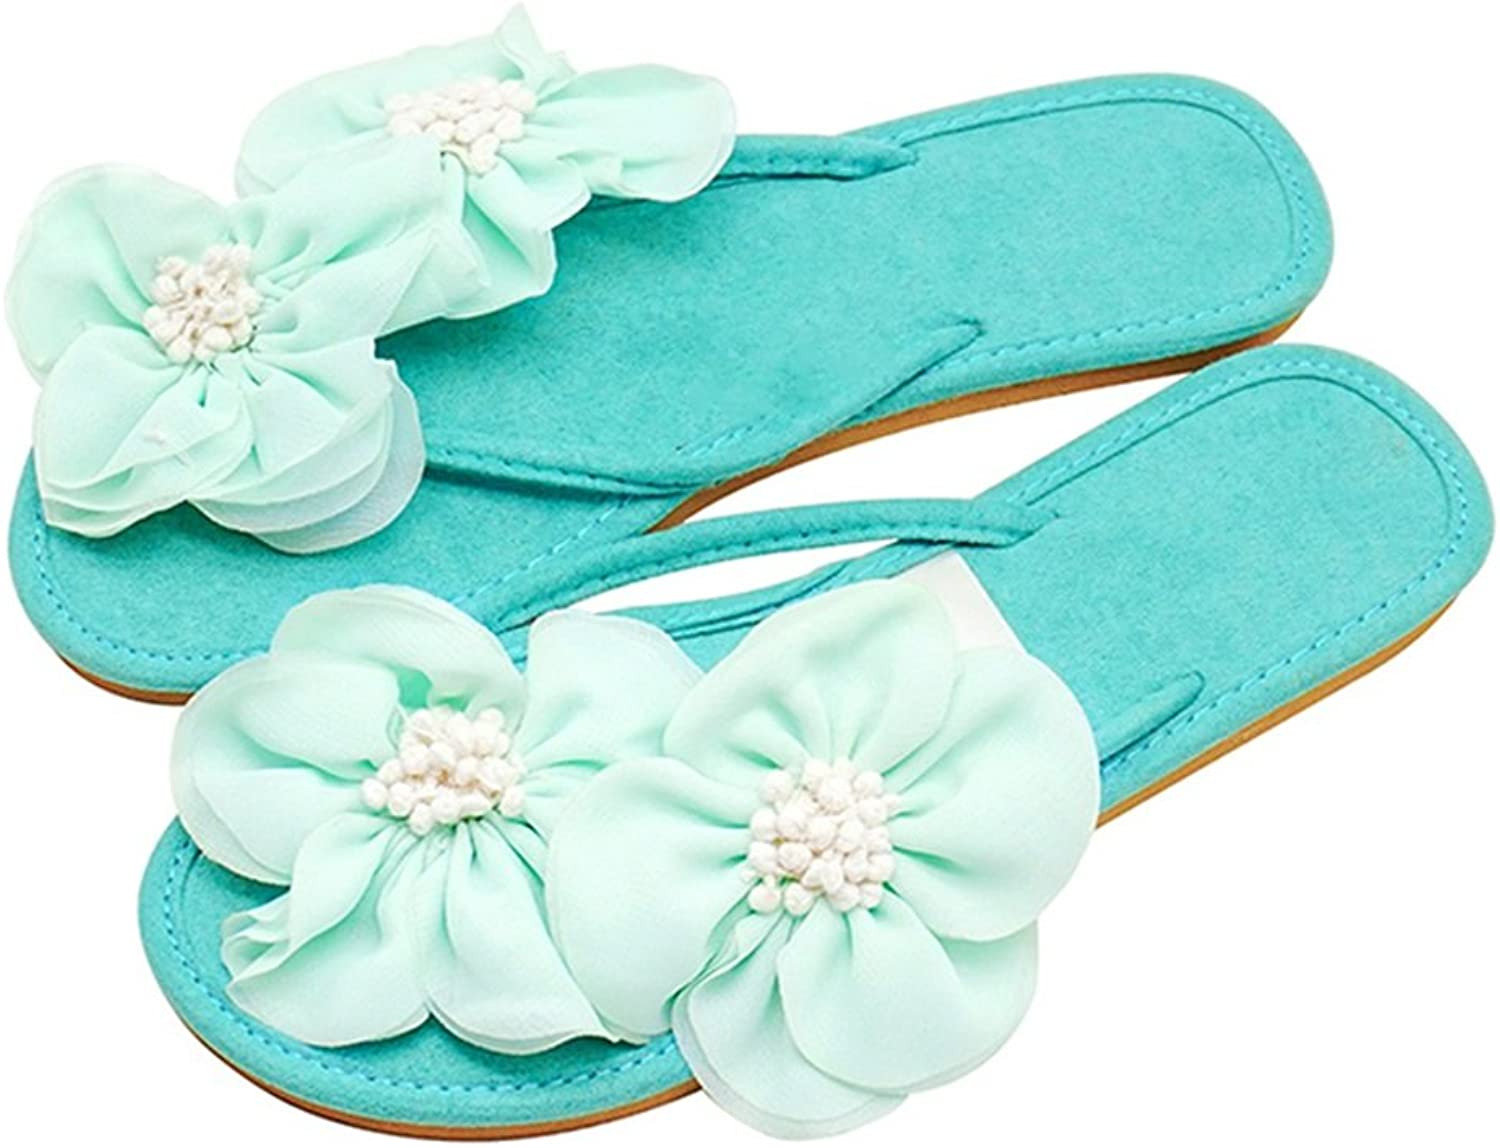 Women's Sandals Thong Sandal Flip Flops Slip-On Sandal for Ladies Woman Girls Leisure Thongs Clip Toe Flat Heel Slipper in Summer for Beach Seaside Suede shoes Bright with Flowers Open Toe Buckle Sand